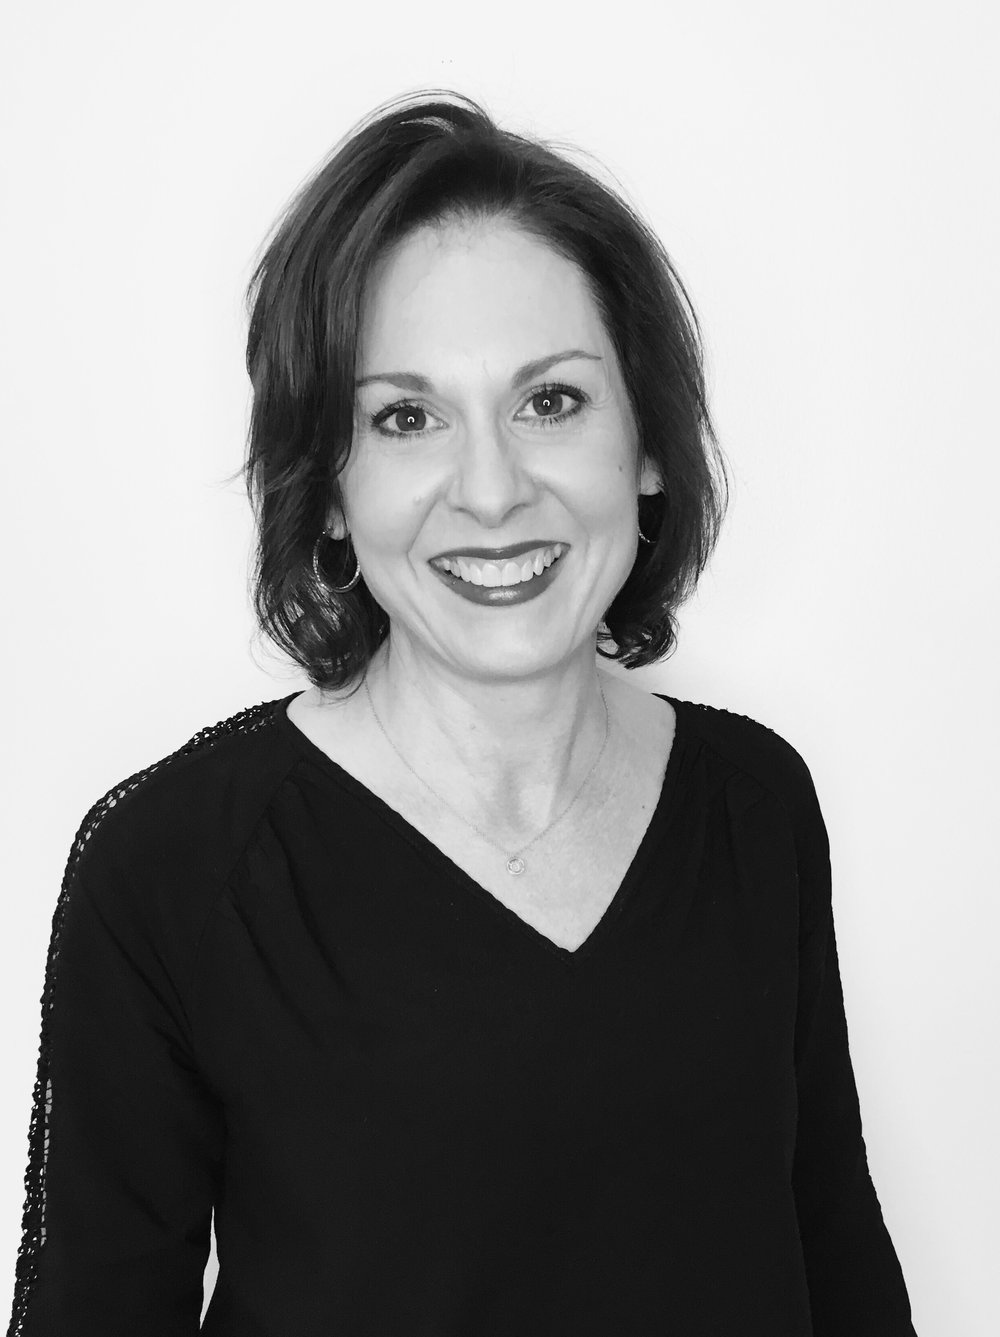 MELISSA BOUDREAUSTYLIST - Specializes in: barbering, all cutting, classic cuts, coloring, facial waxing, updos, home care